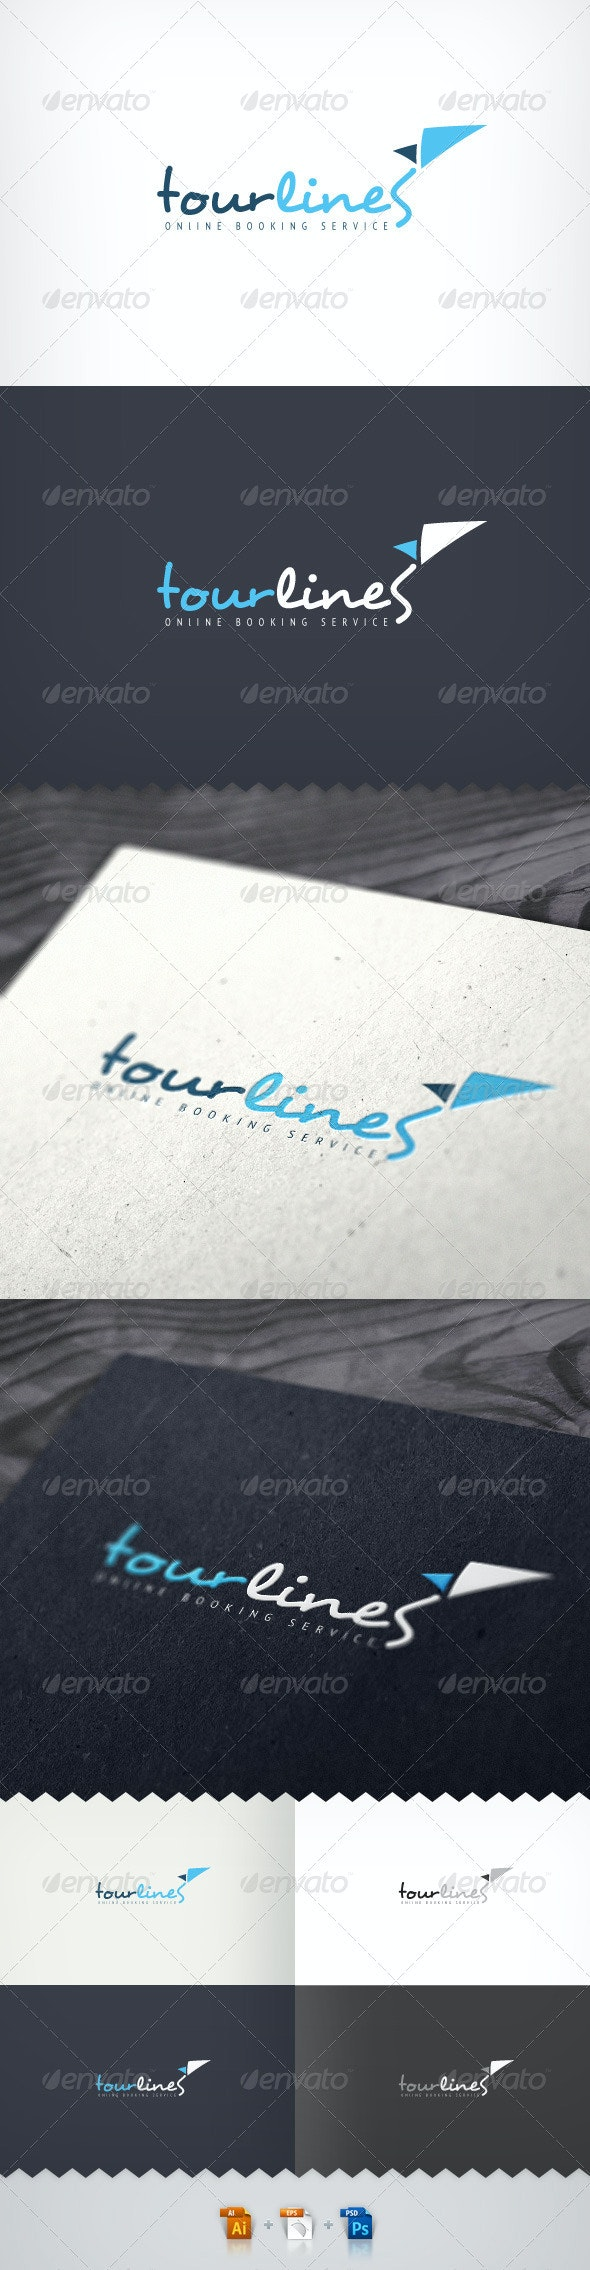 Tour Lines Online Booking Service Logo - Objects Logo Templates